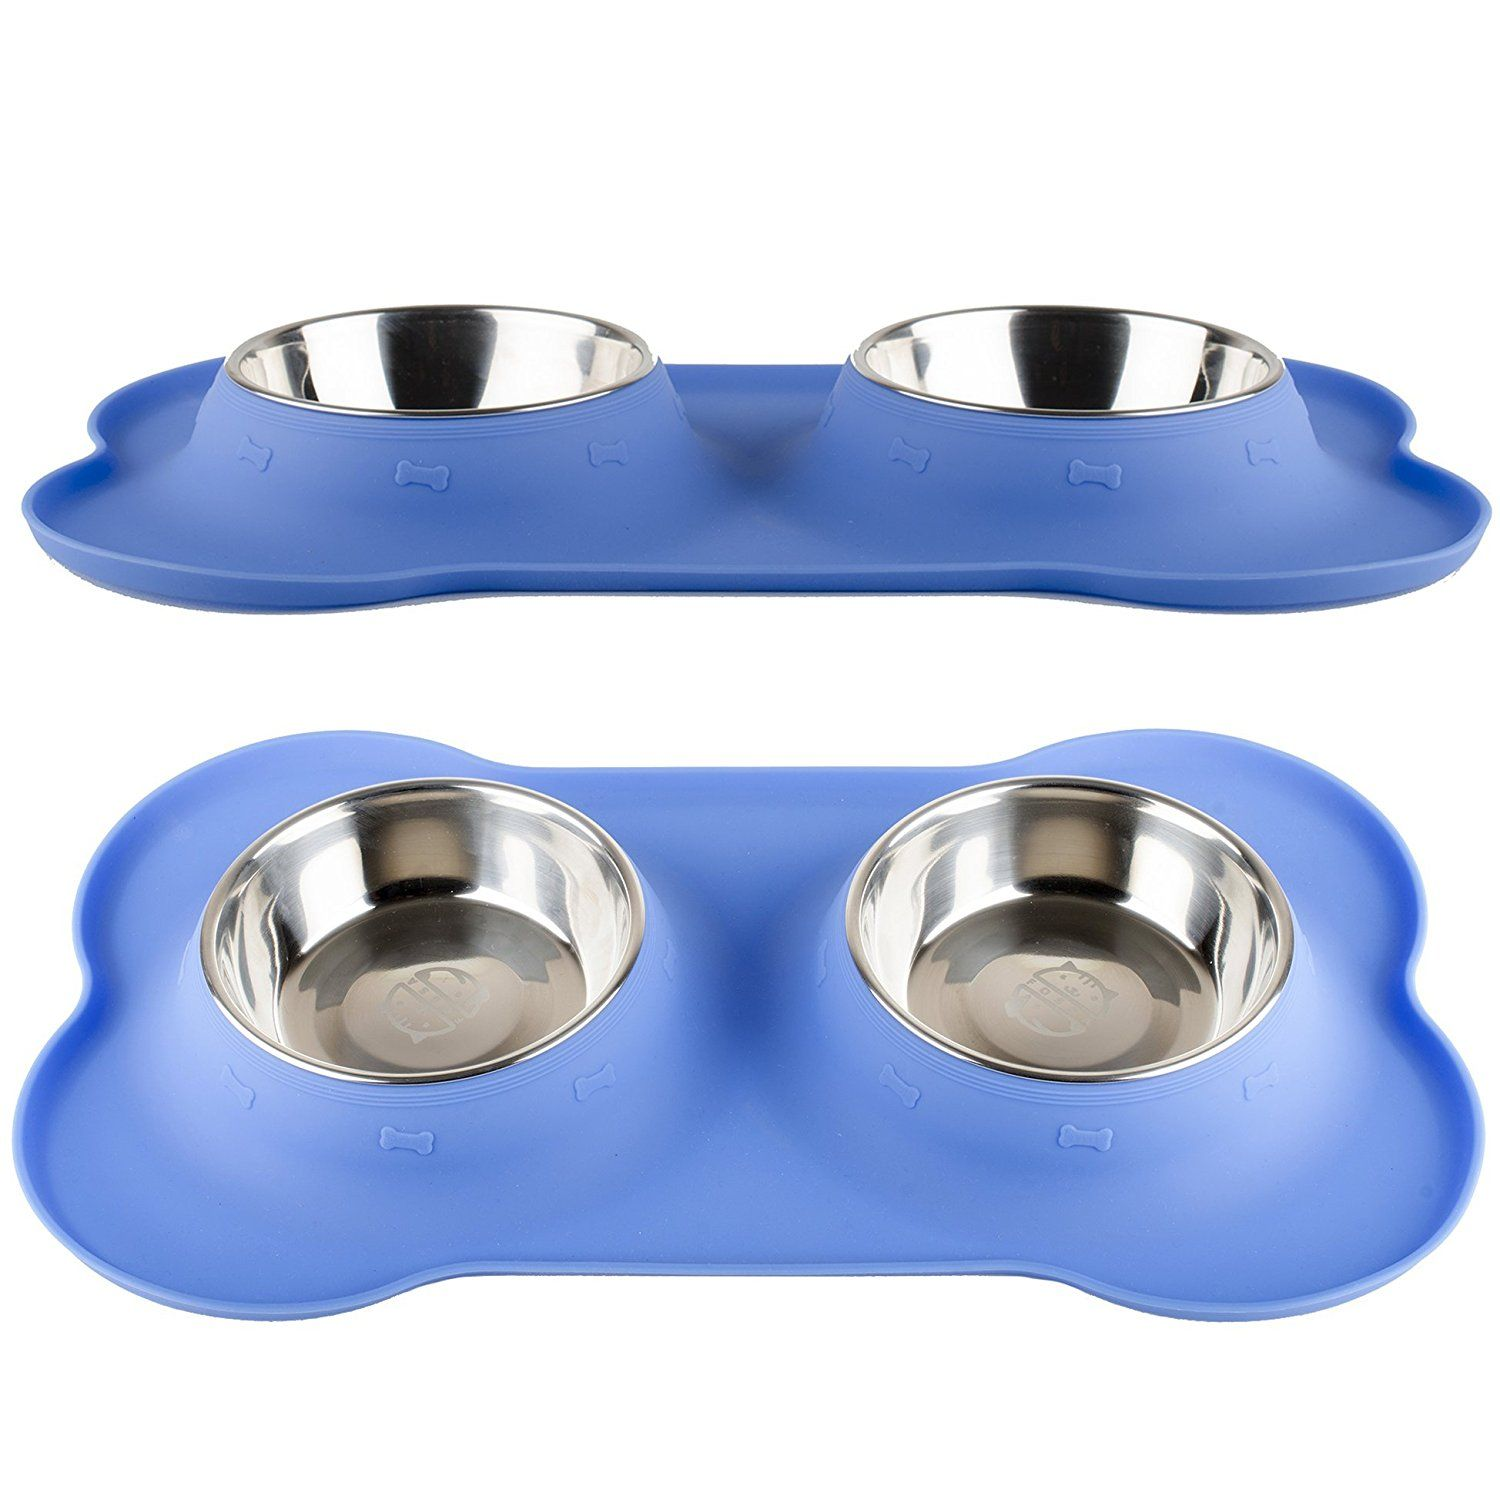 Fossa No Spill Stainless Steel Dog Food Bowls With Silicone Mat 24 oz Feeder For Small to Medium Pets ** For more information, visit image link. (This is an Amazon affiliate link)